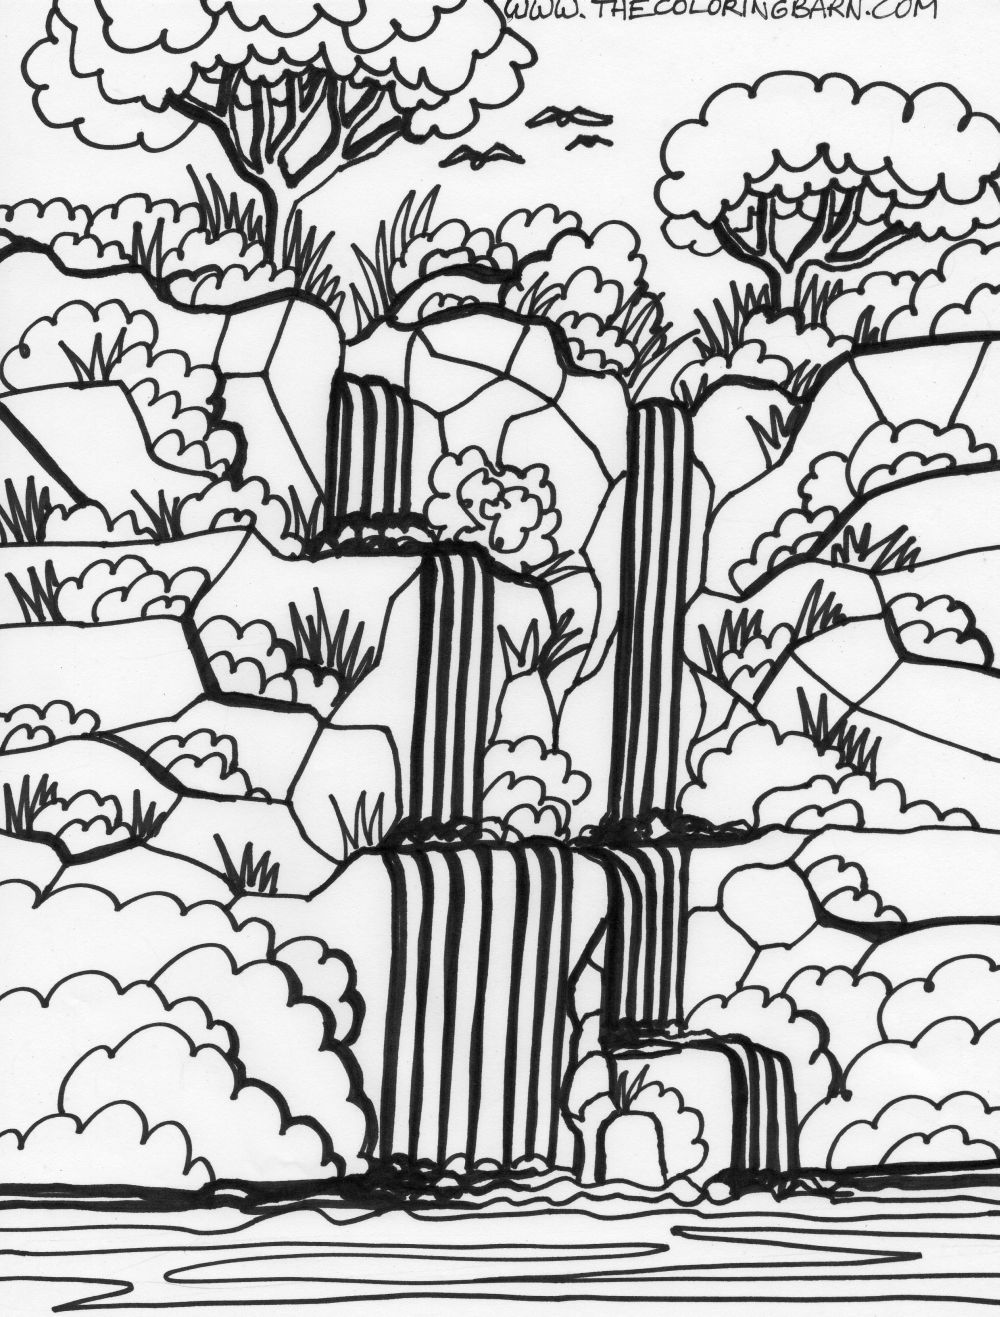 Printable coloring pages rainforest animals - Free Printable Coloring Pages Jungle Animals